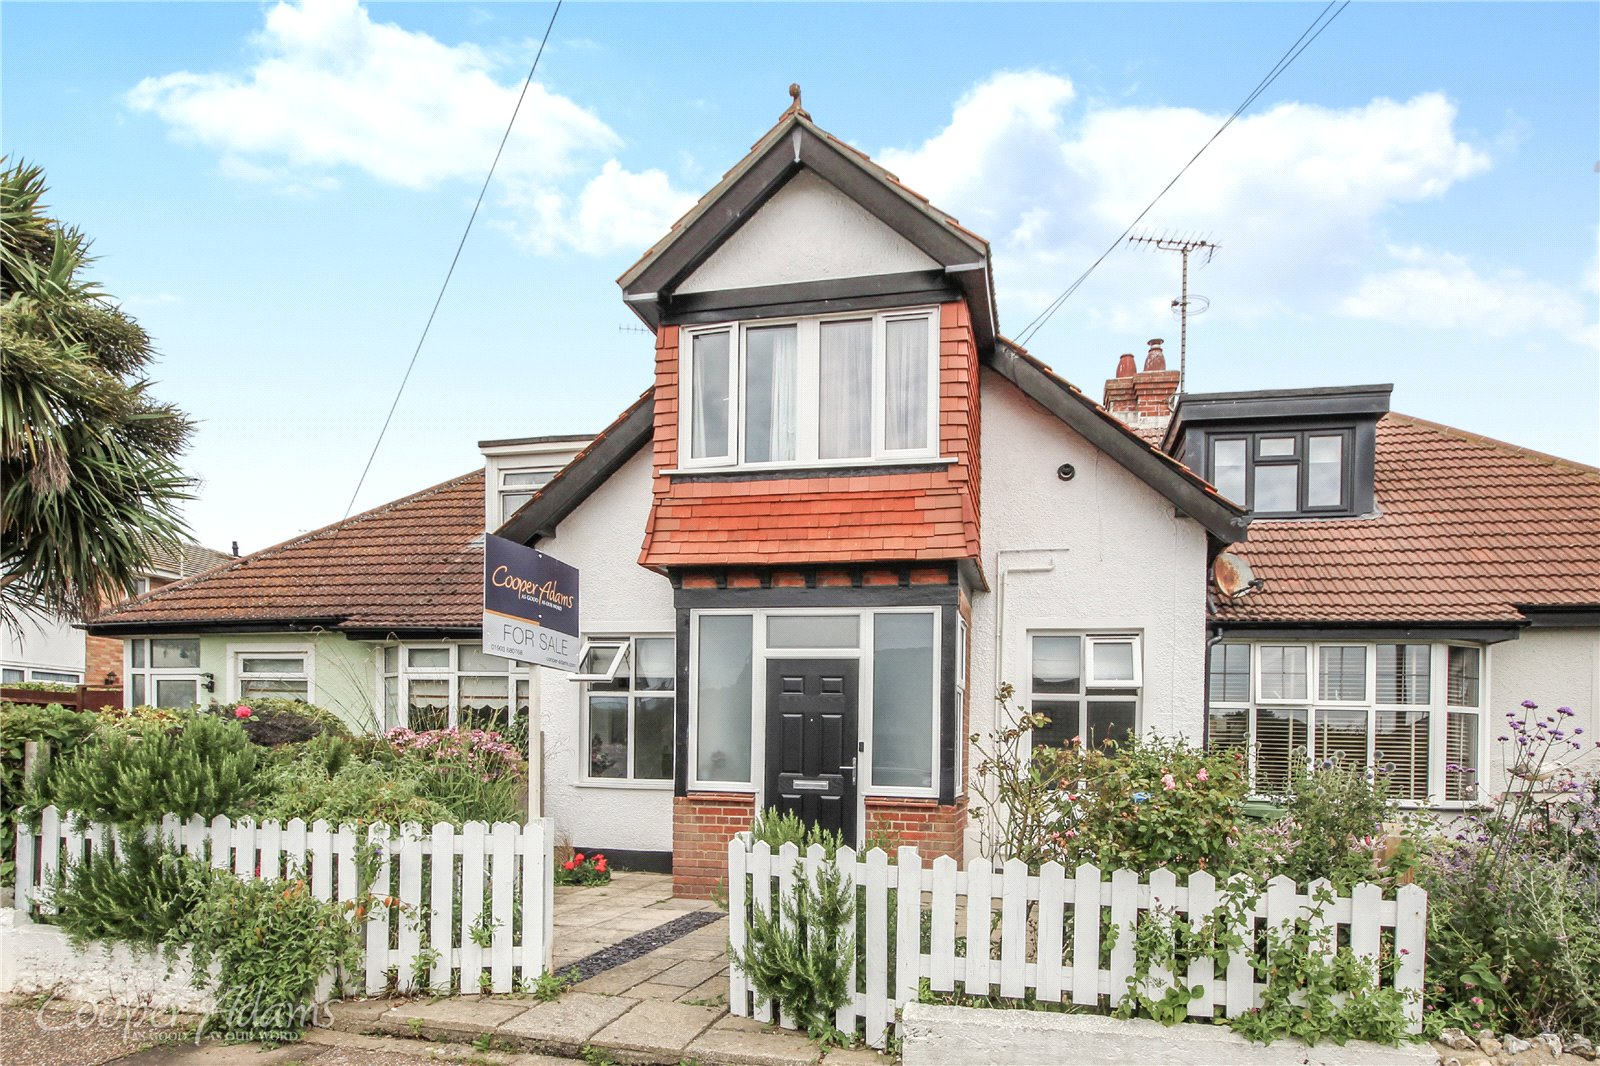 3 bed house for sale in Seafield Road, Rustington, BN16